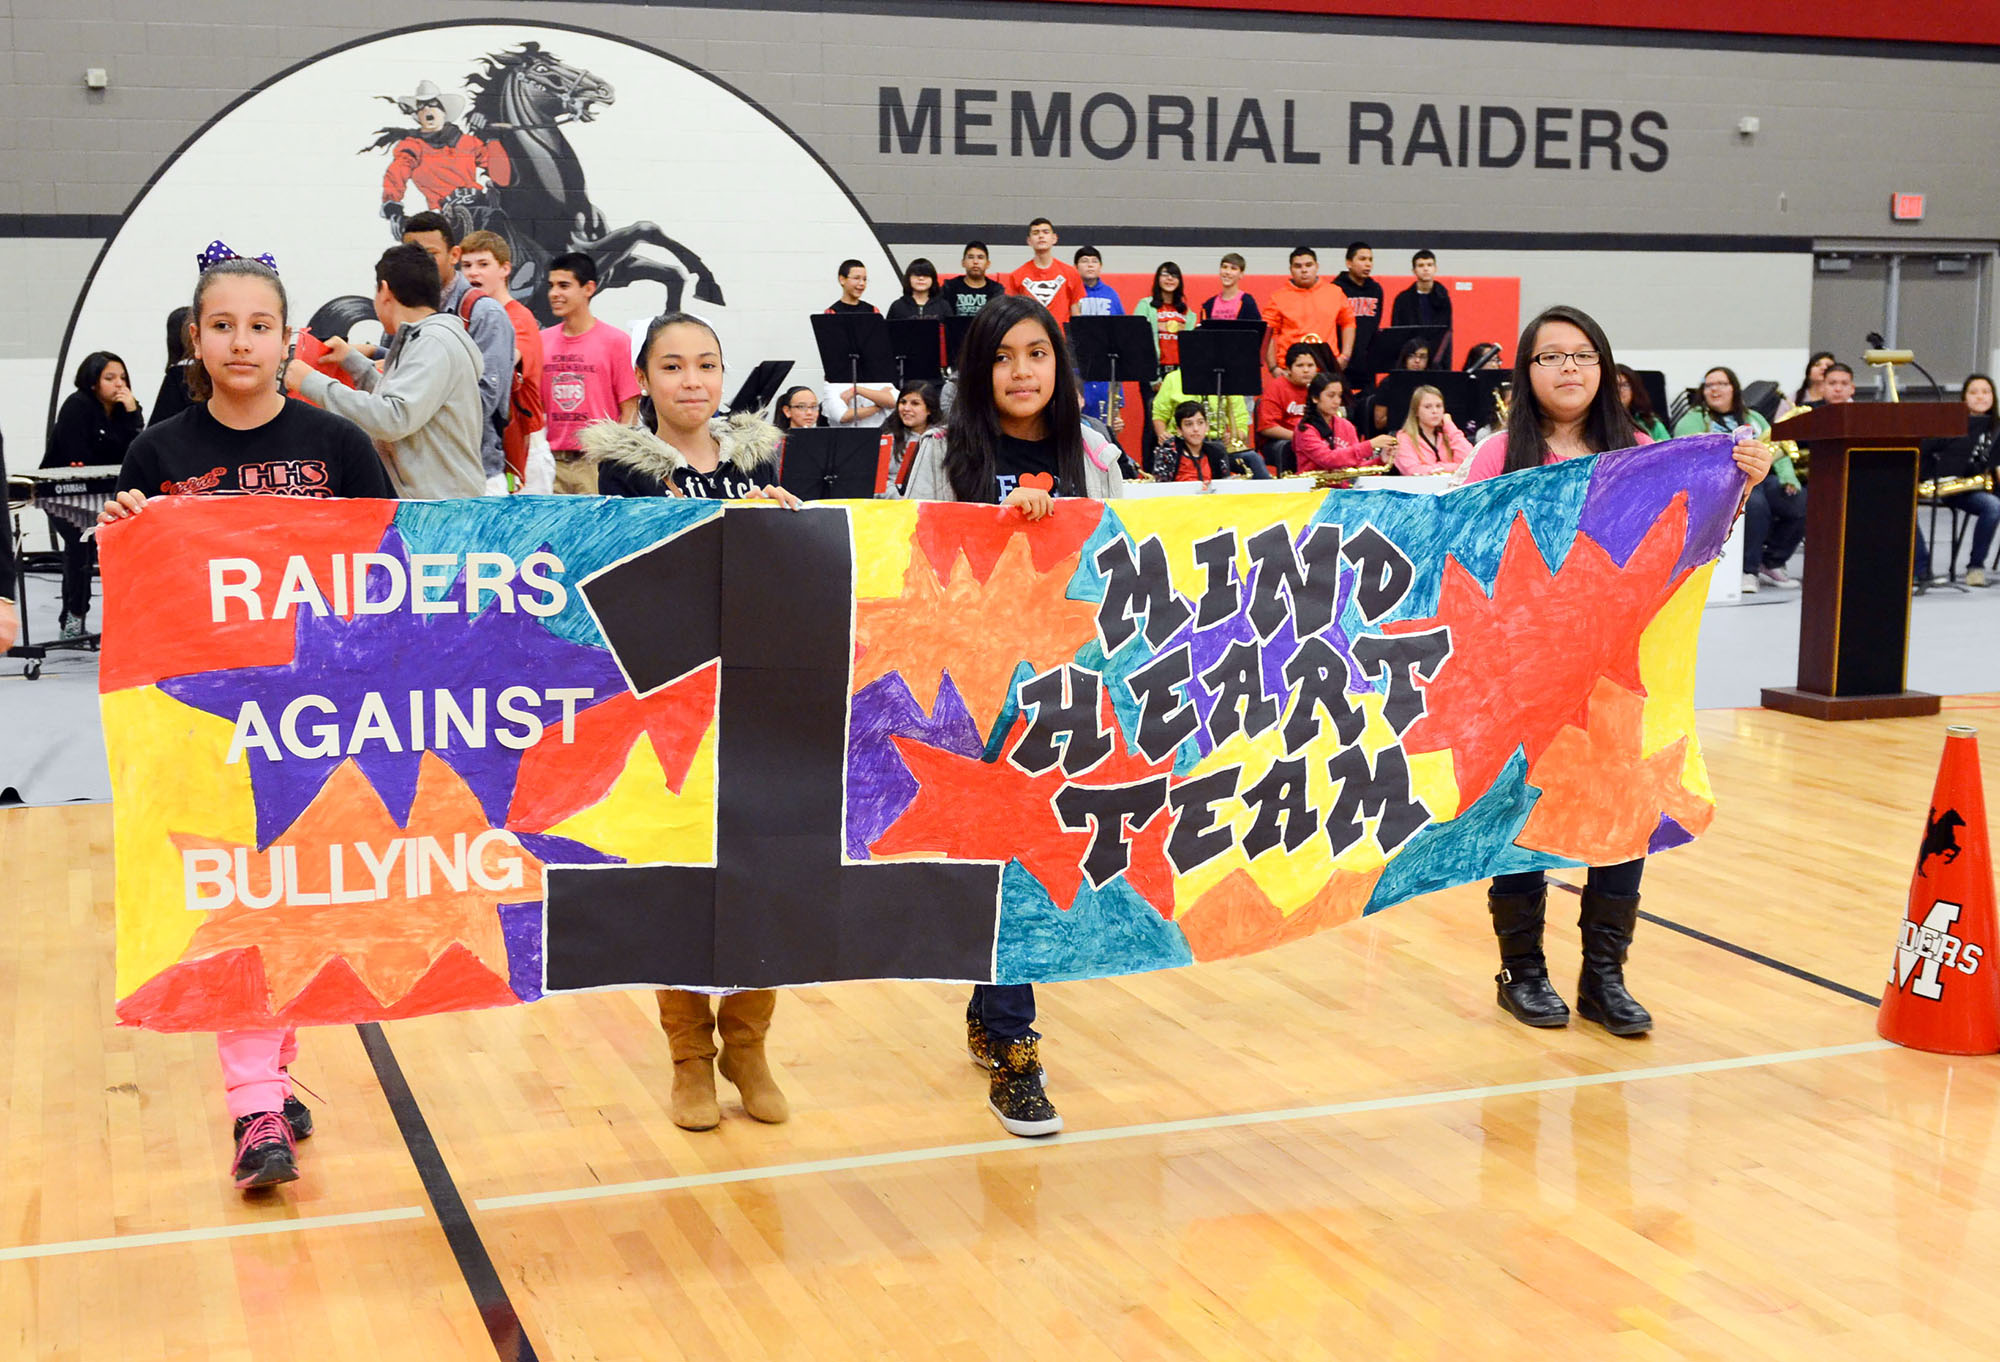 Memorial Raiders aim to keep all students safe with anti-bullying program